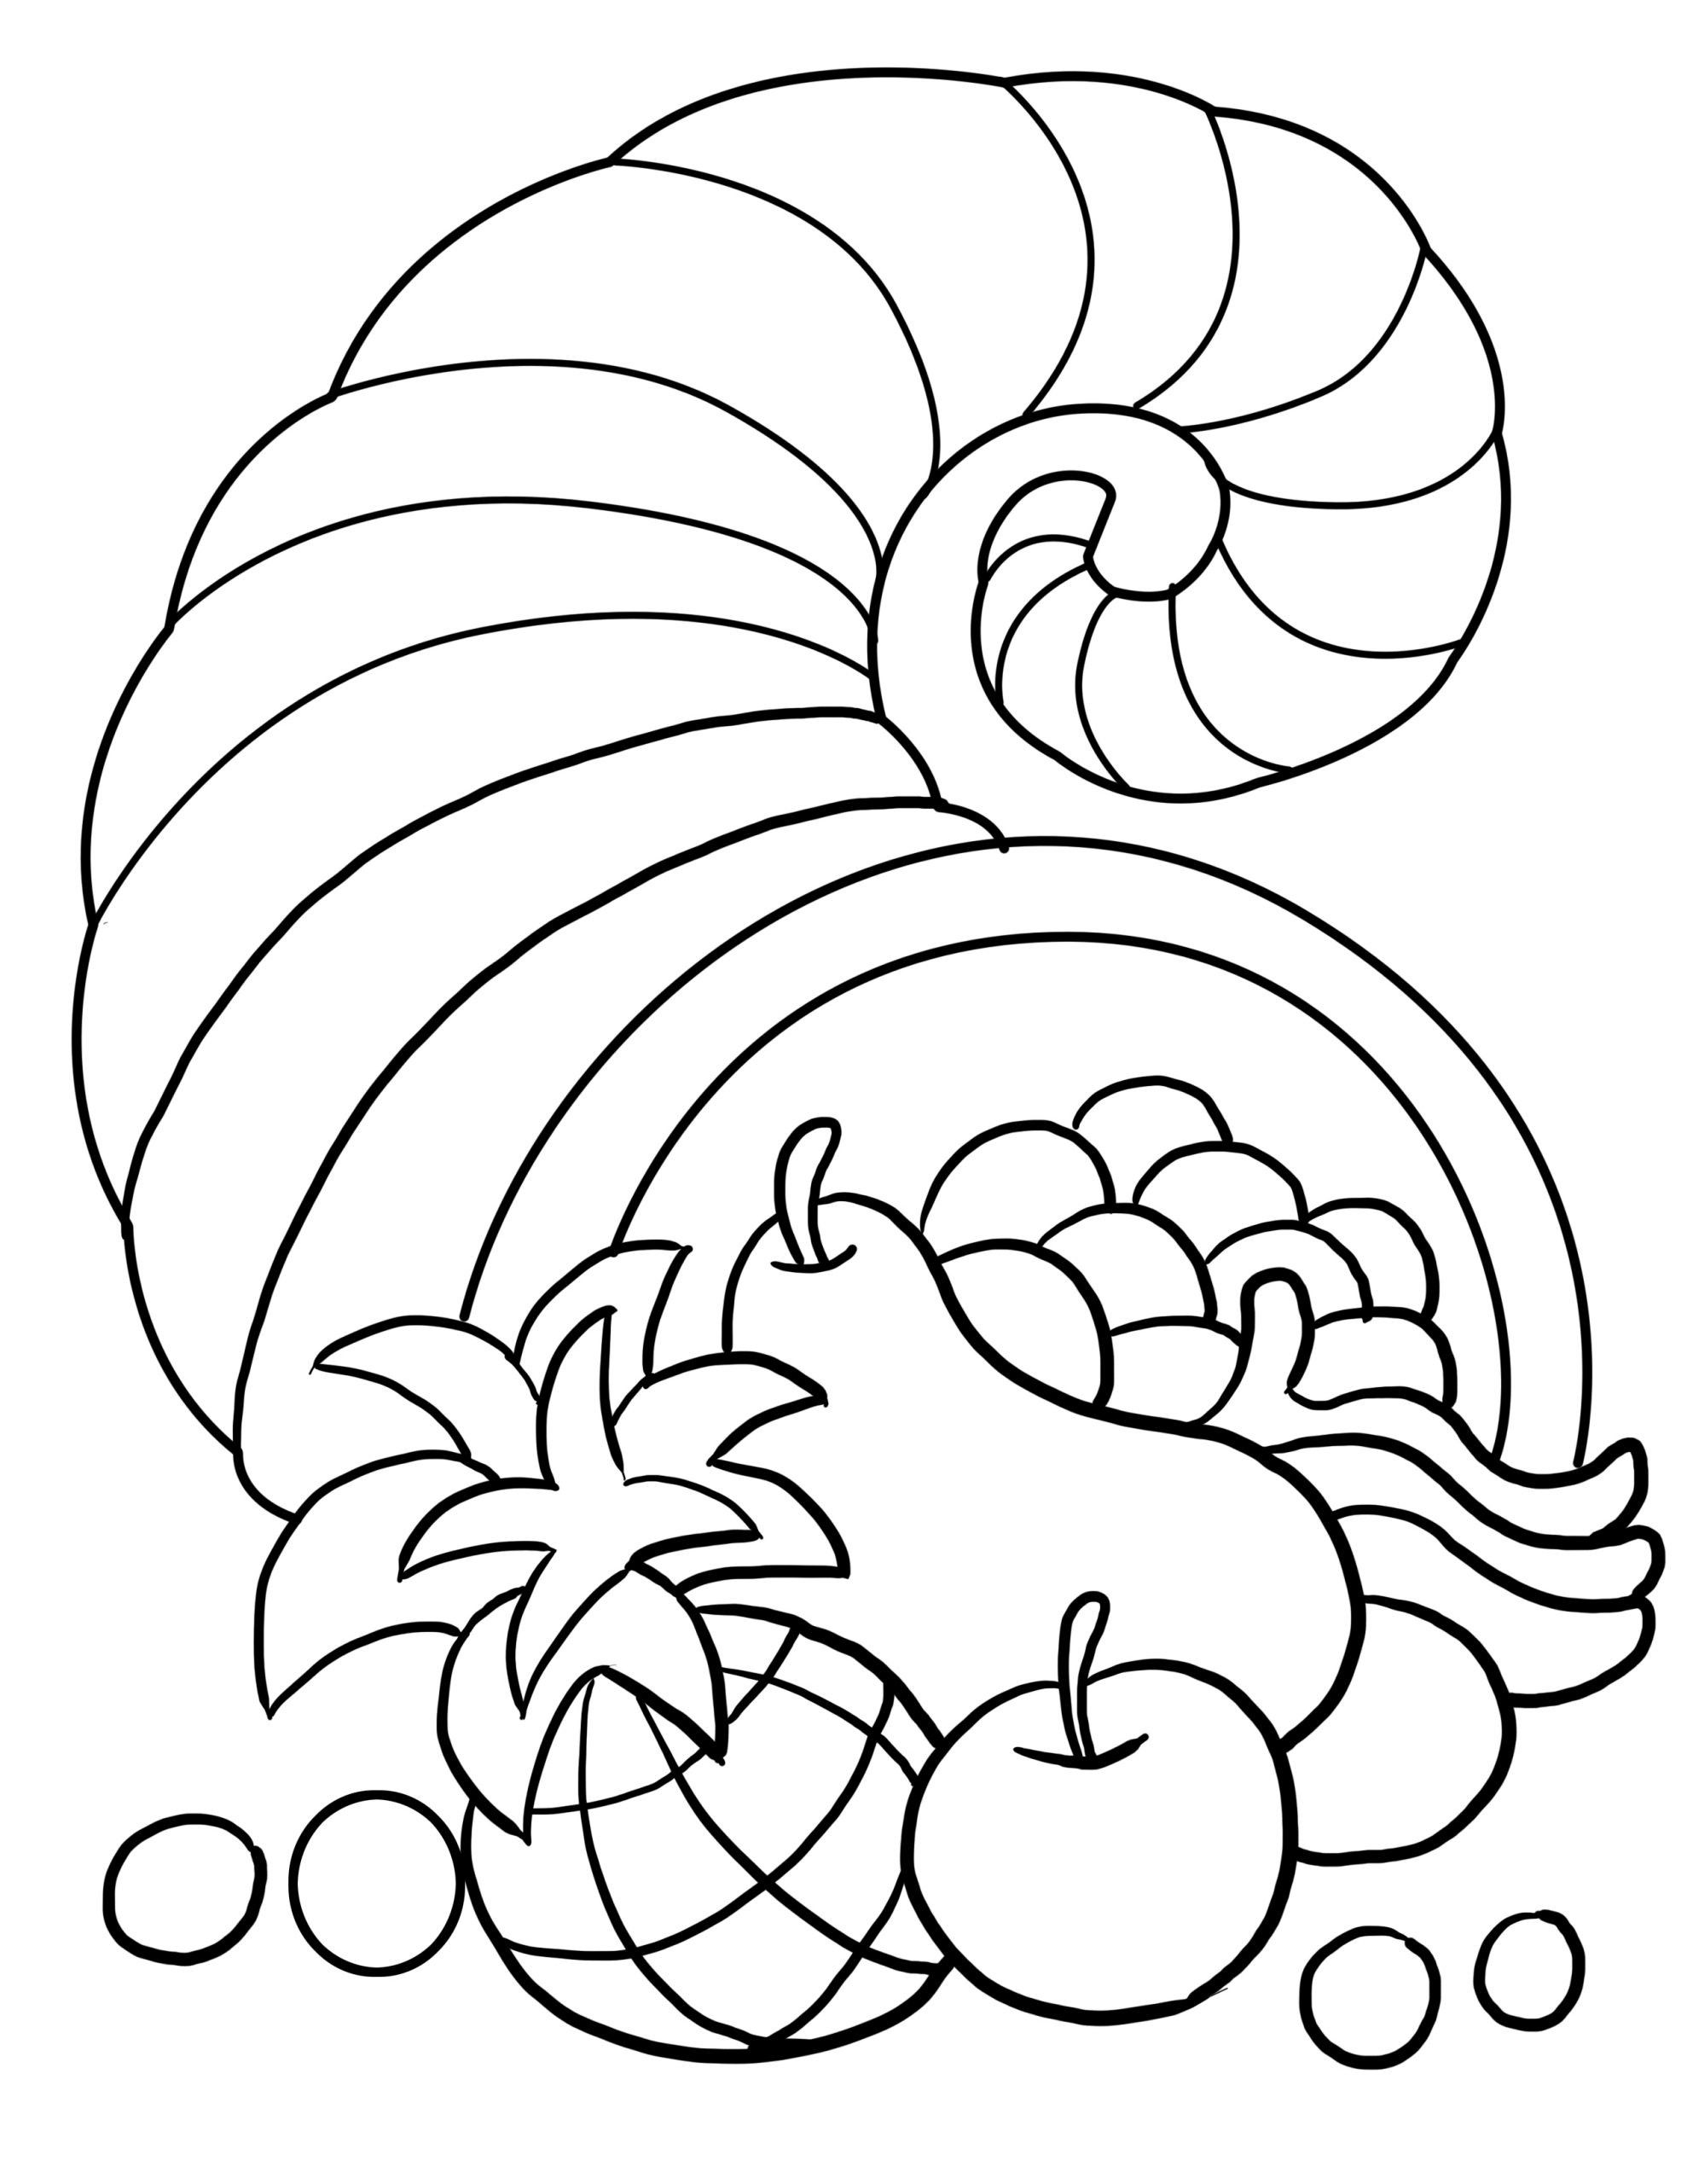 Turkey Coloring Page For Preschoolers Youngandtae Com Turkey Coloring Pages Free Thanksgiving Coloring Pages Thanksgiving Coloring Pages [ 2560 x 1978 Pixel ]